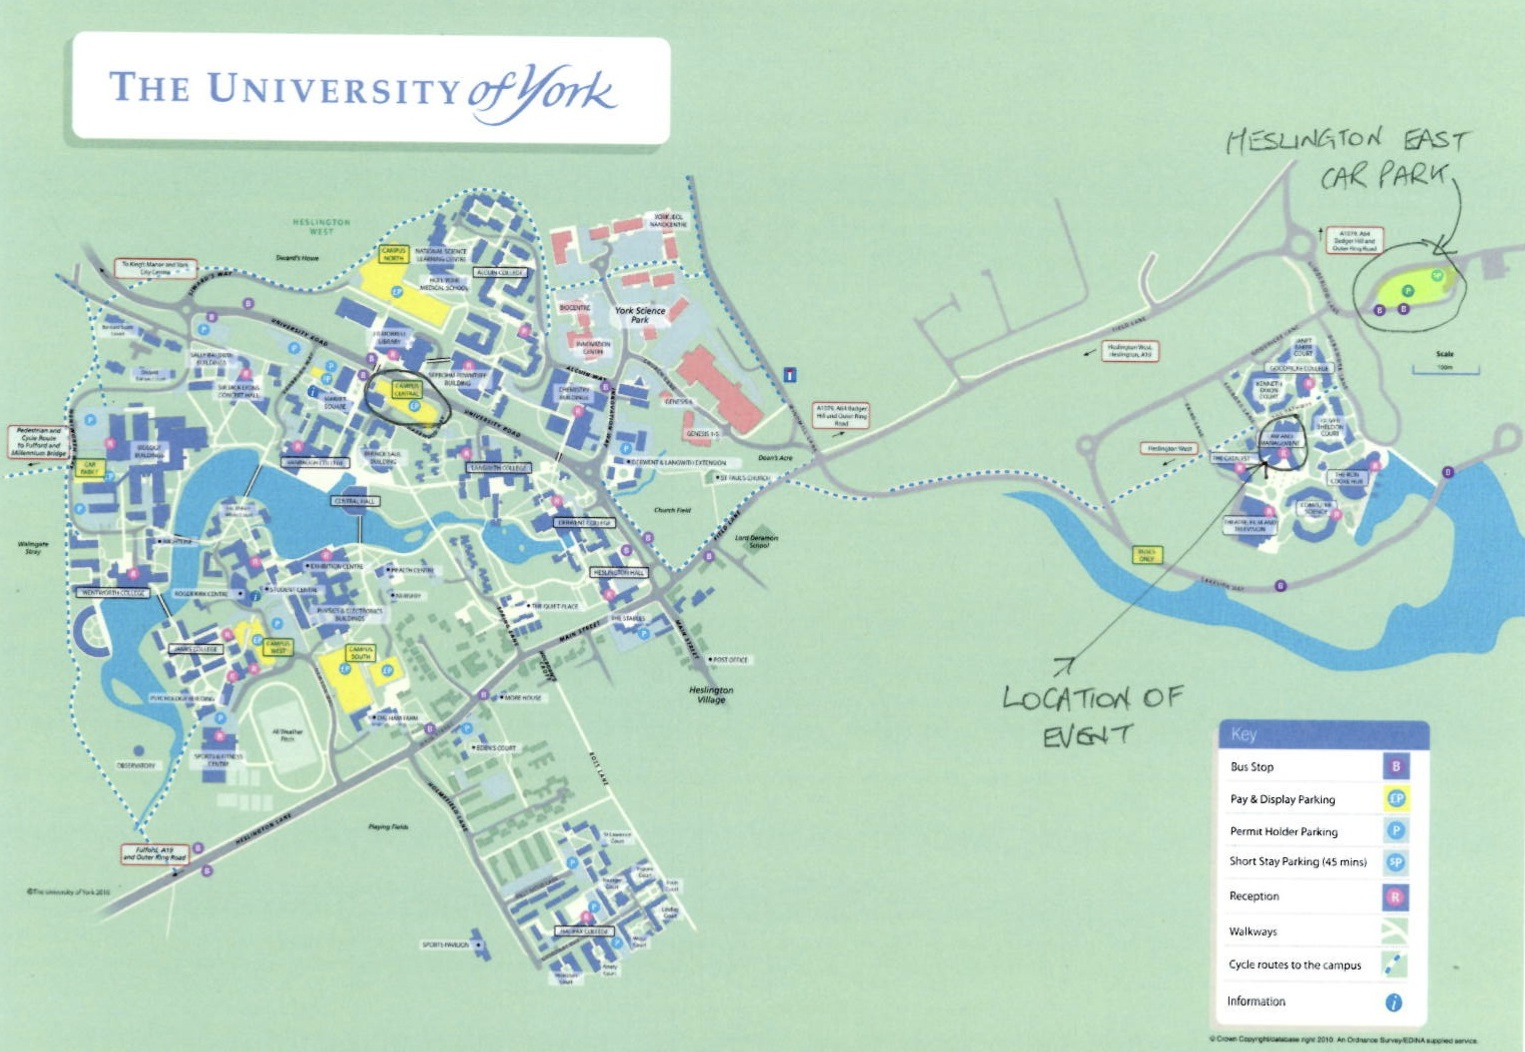 Top tips for Post-Offer Visit Days - walk around campus